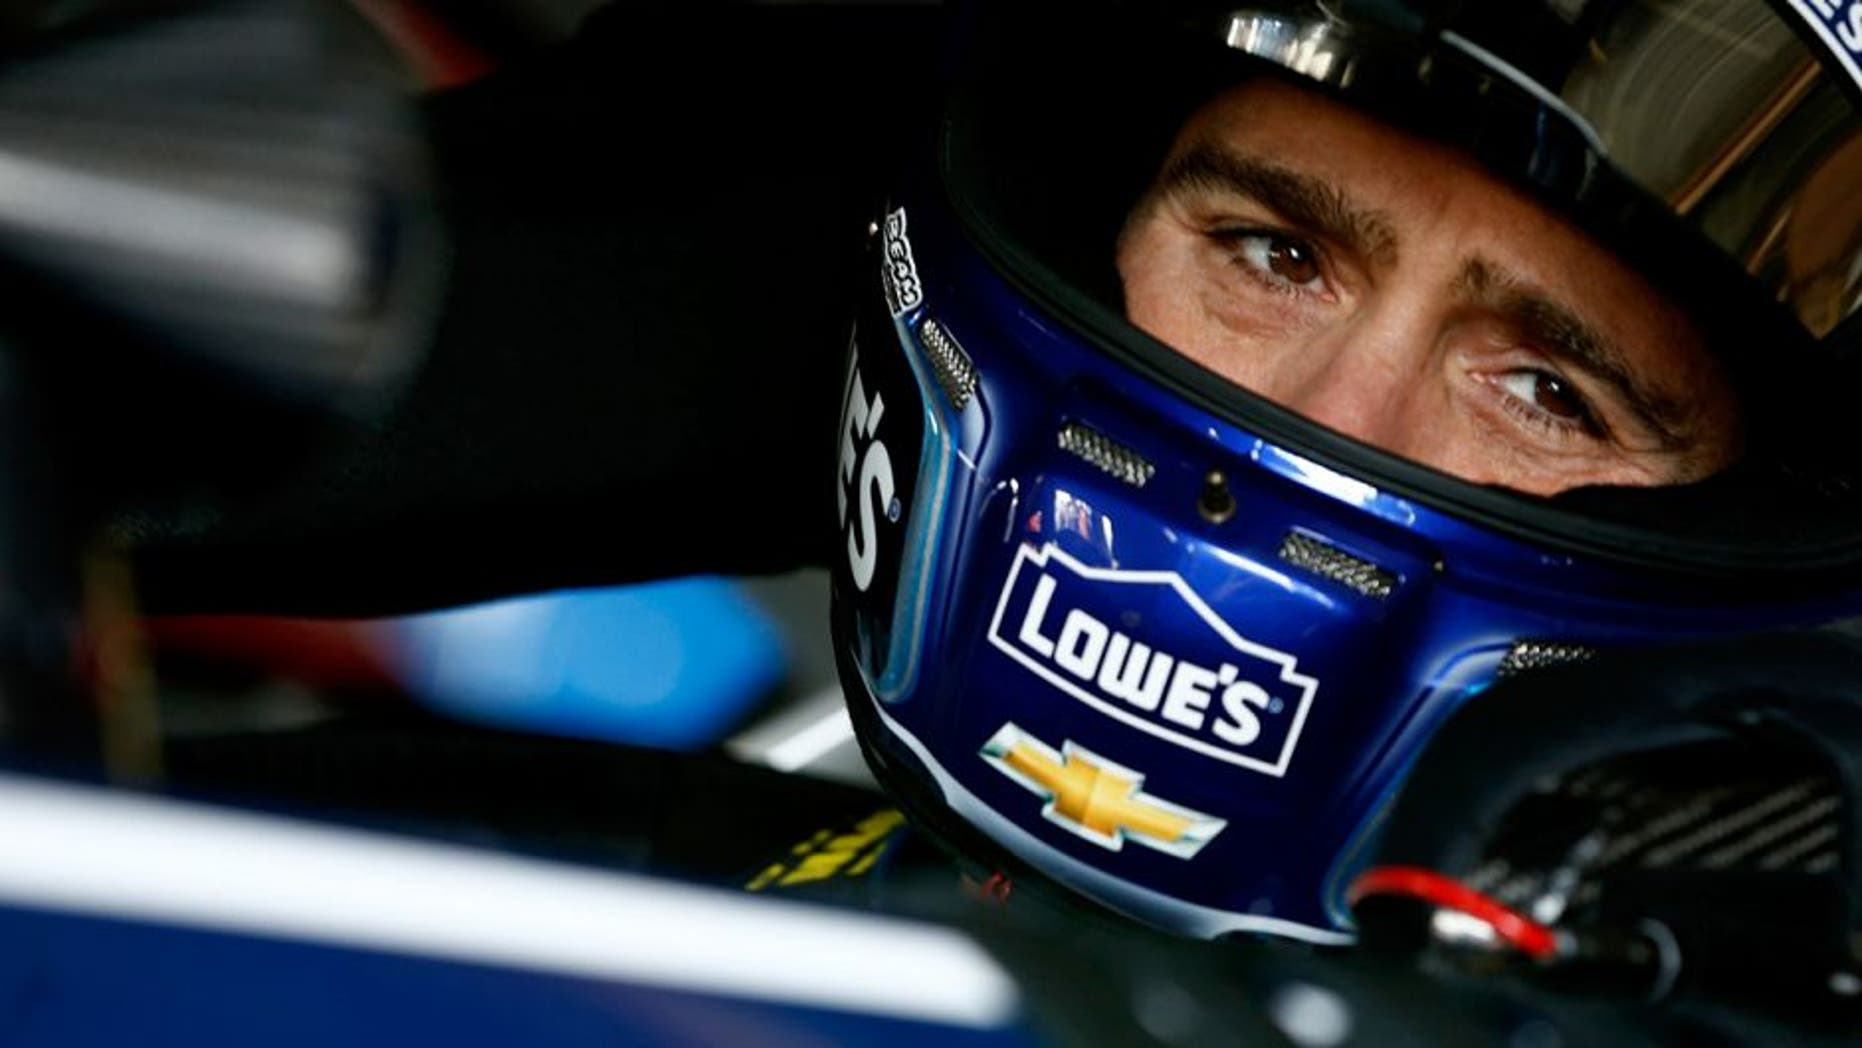 DOVER, DE - MAY 14: Jimmie Johnson, driver of the #48 Lowe's Chevrolet, sits in his car during practice for the NASCAR Sprint Cup Series AAA Drive For Autism at Dover International Speedway on May 14, 2016 in Dover, Delaware. (Photo by Jeff Zelevansky/NASCAR via Getty Images)